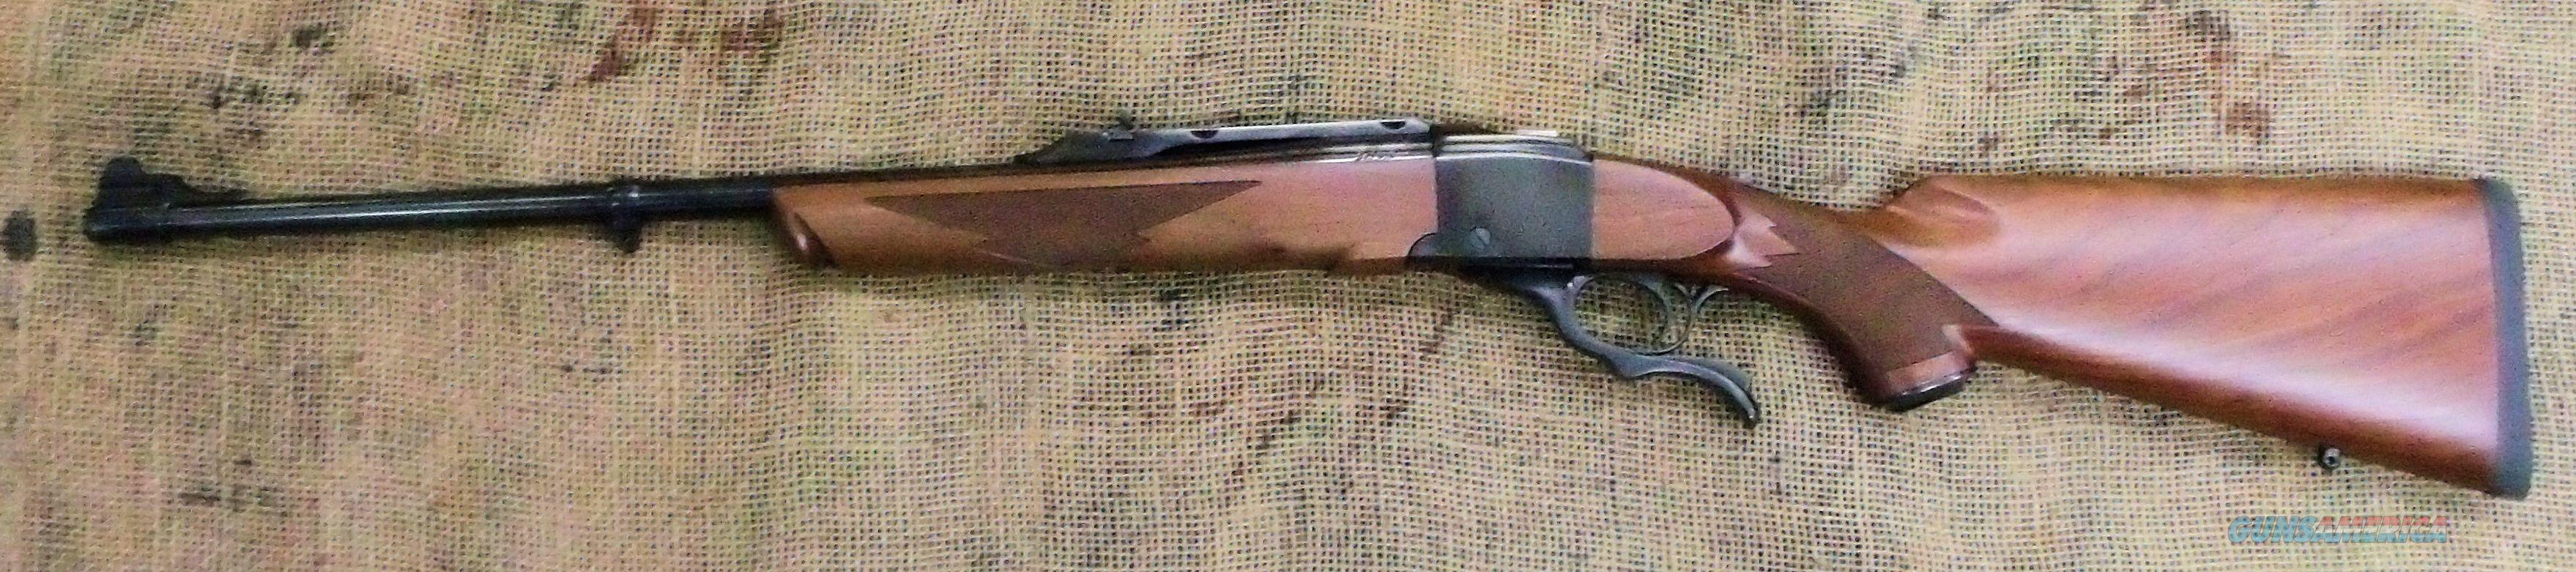 RUGER Number 1ARifle, 243 Win Cal  Guns > Rifles > Ruger Rifles > #1 Type